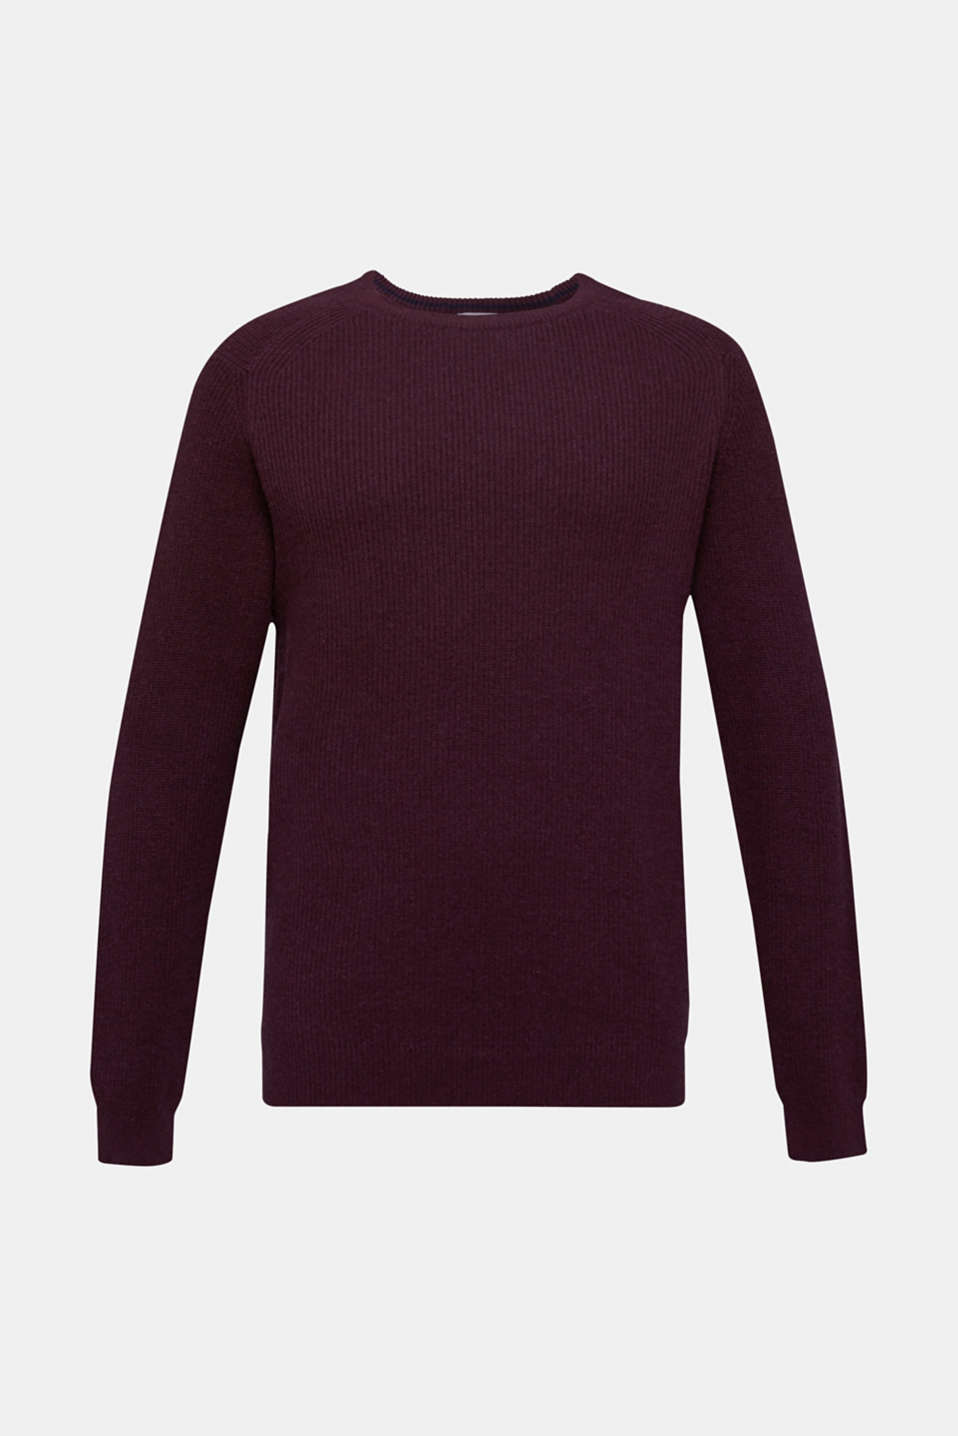 Wool blend: jumper knit in rib stitch, BORDEAUX RED 5, detail image number 6